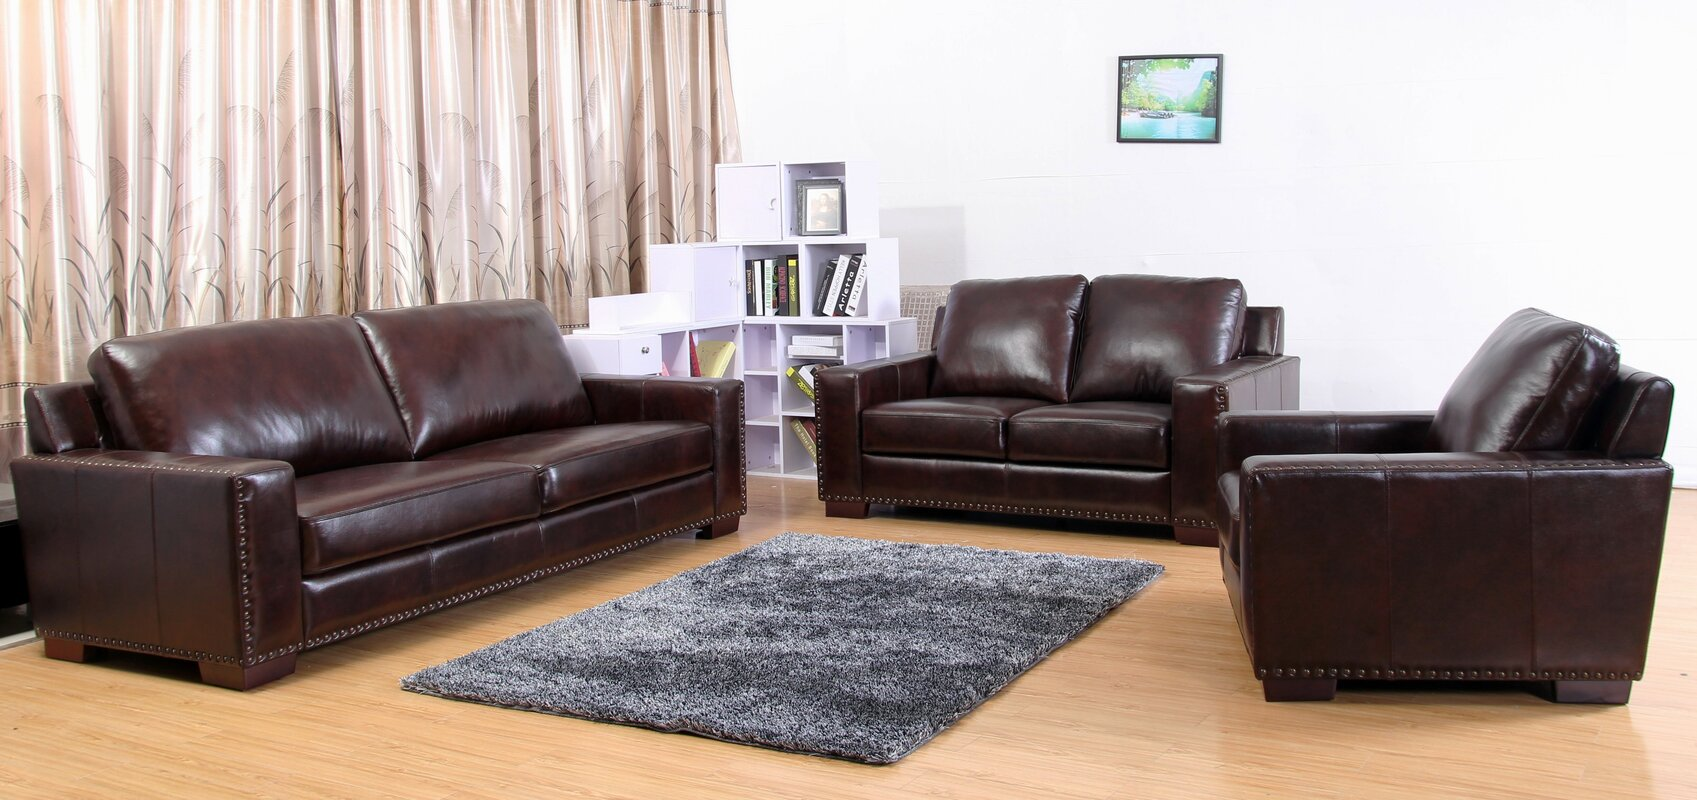 three piece living room set. Portsmouth Leather 3 Piece Living Room Set Red Barrel Studio